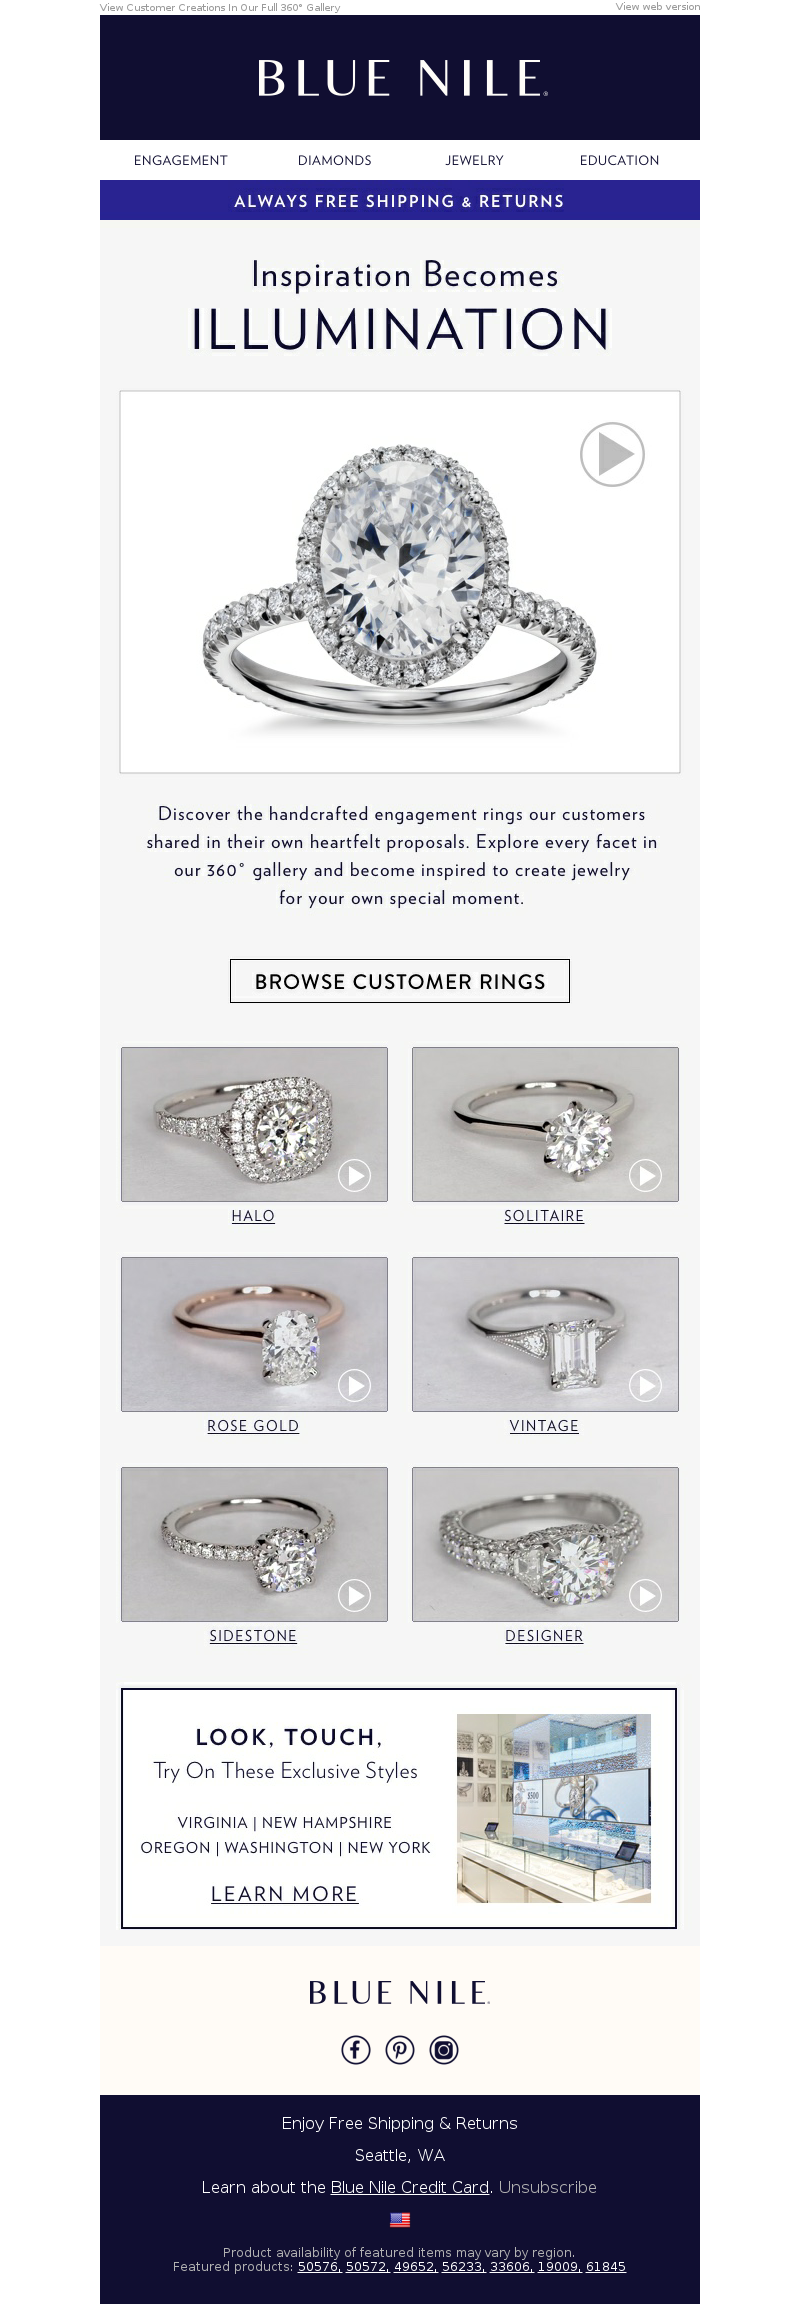 Blue Nile - Real Customer Engagement Rings That Inspire